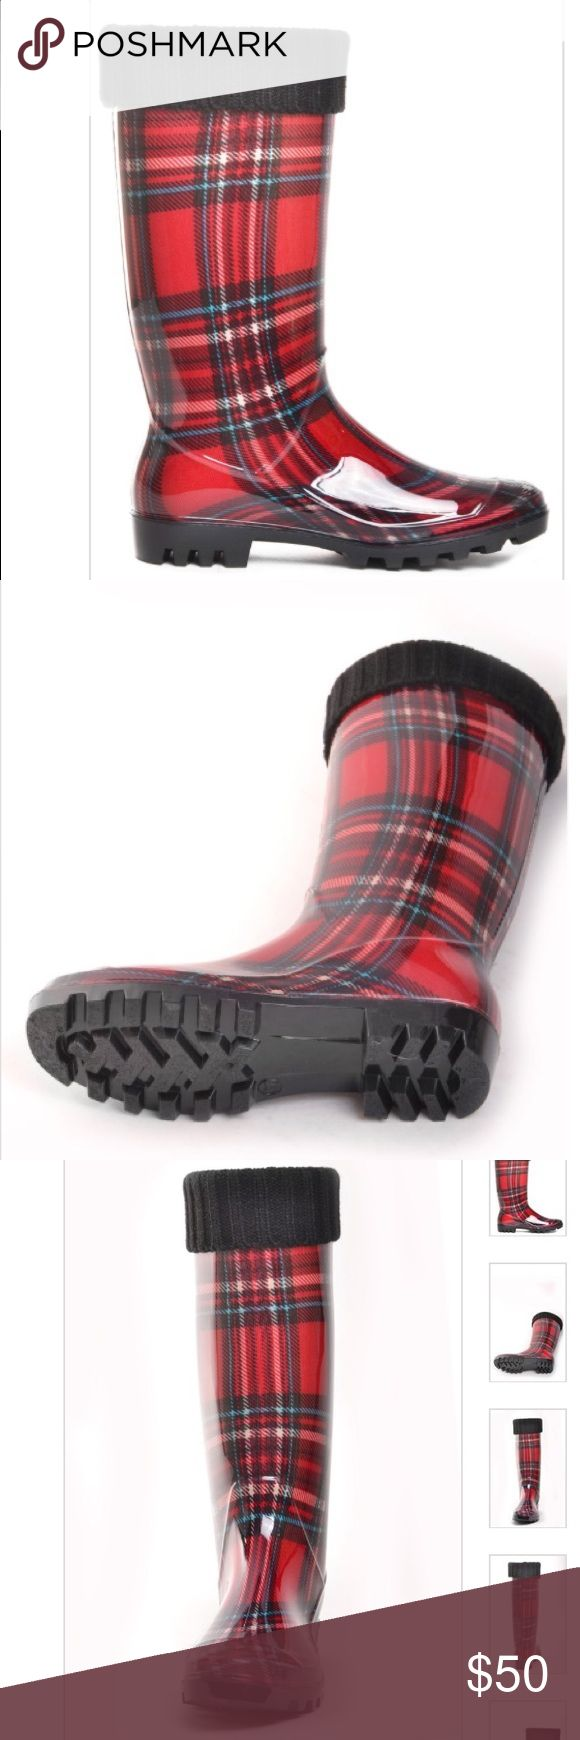 DAV fleece lined Rubber Rain Boots Red Plaid 6 NWT Bonnaroo is a classic plaid welly with a nice surprise. A removable, washable liner makes it warm in the winter and cool in the summer. Features a rugged outsole in black. Fit notes: Fits true-to size and works on a narrow to medium calf.  Size 6 dav Shoes Winter & Rain Boots